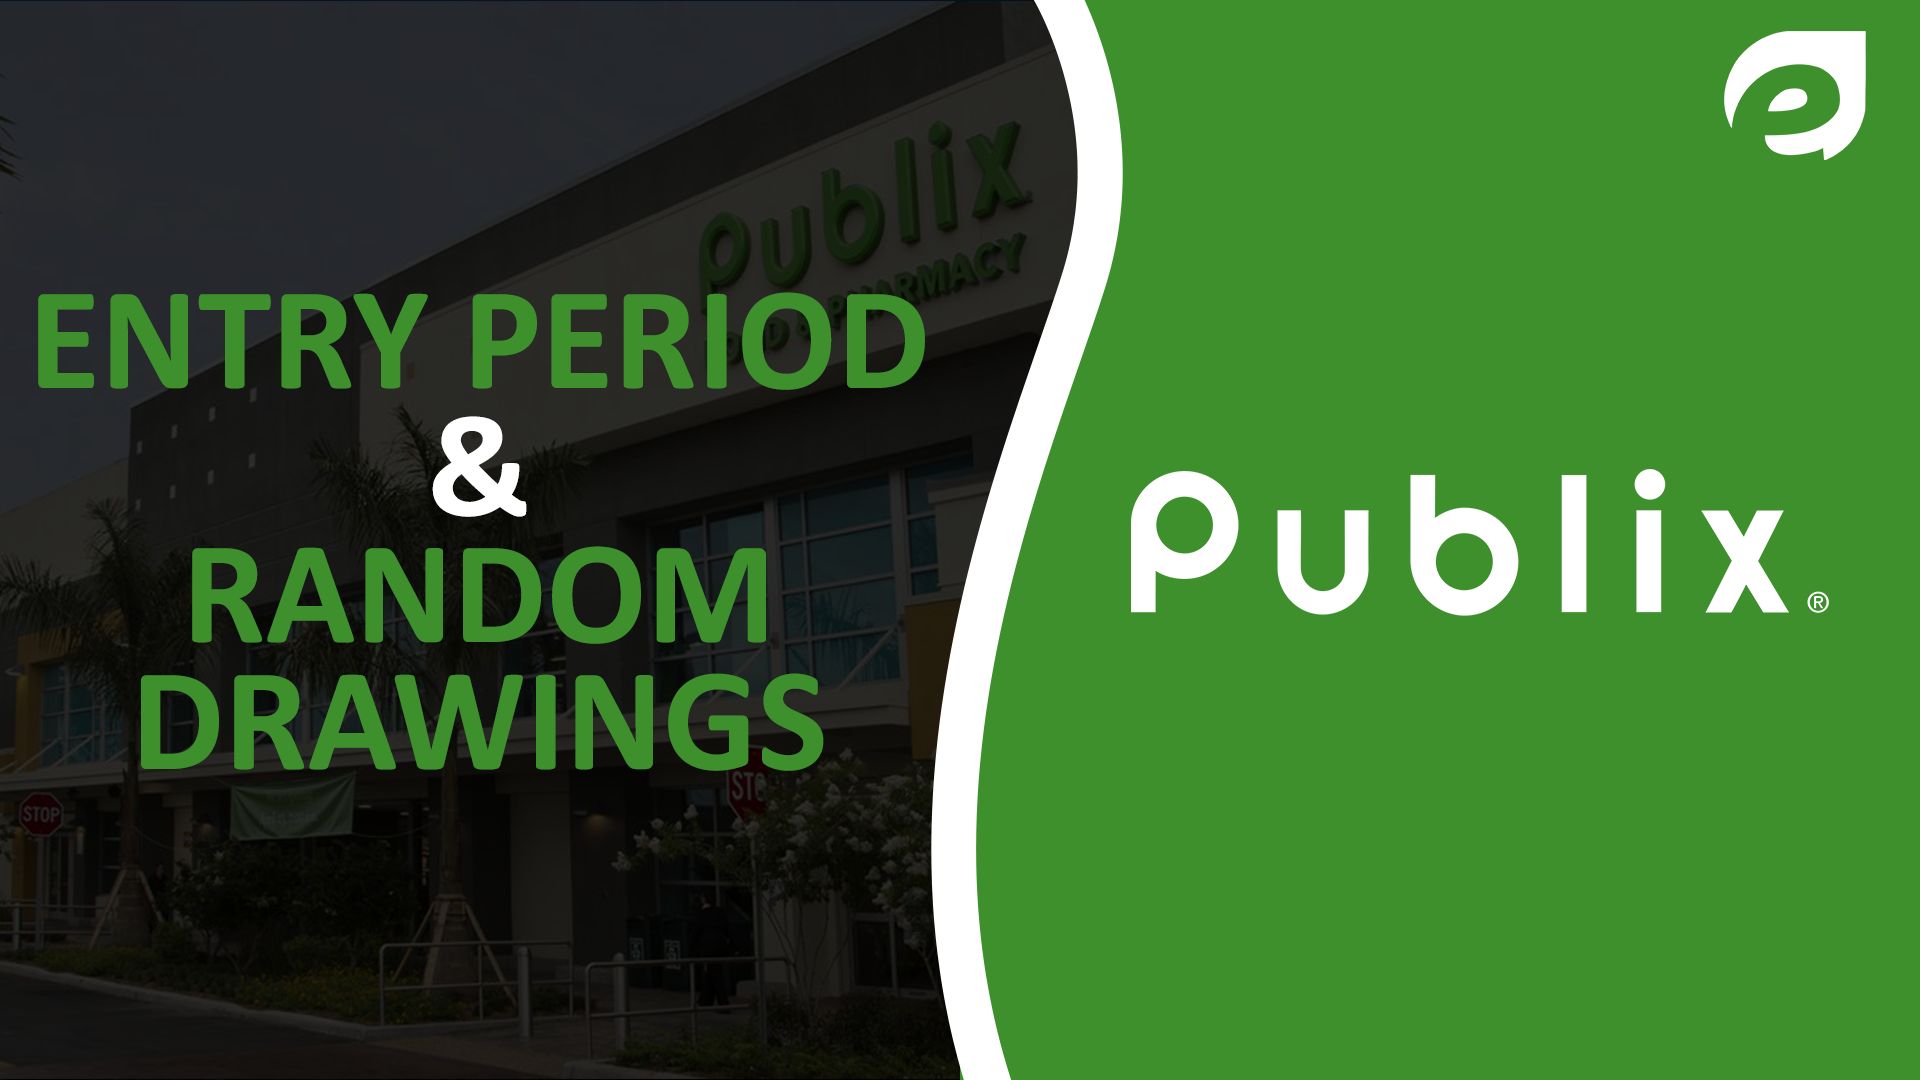 publix $1000 sweepstakes